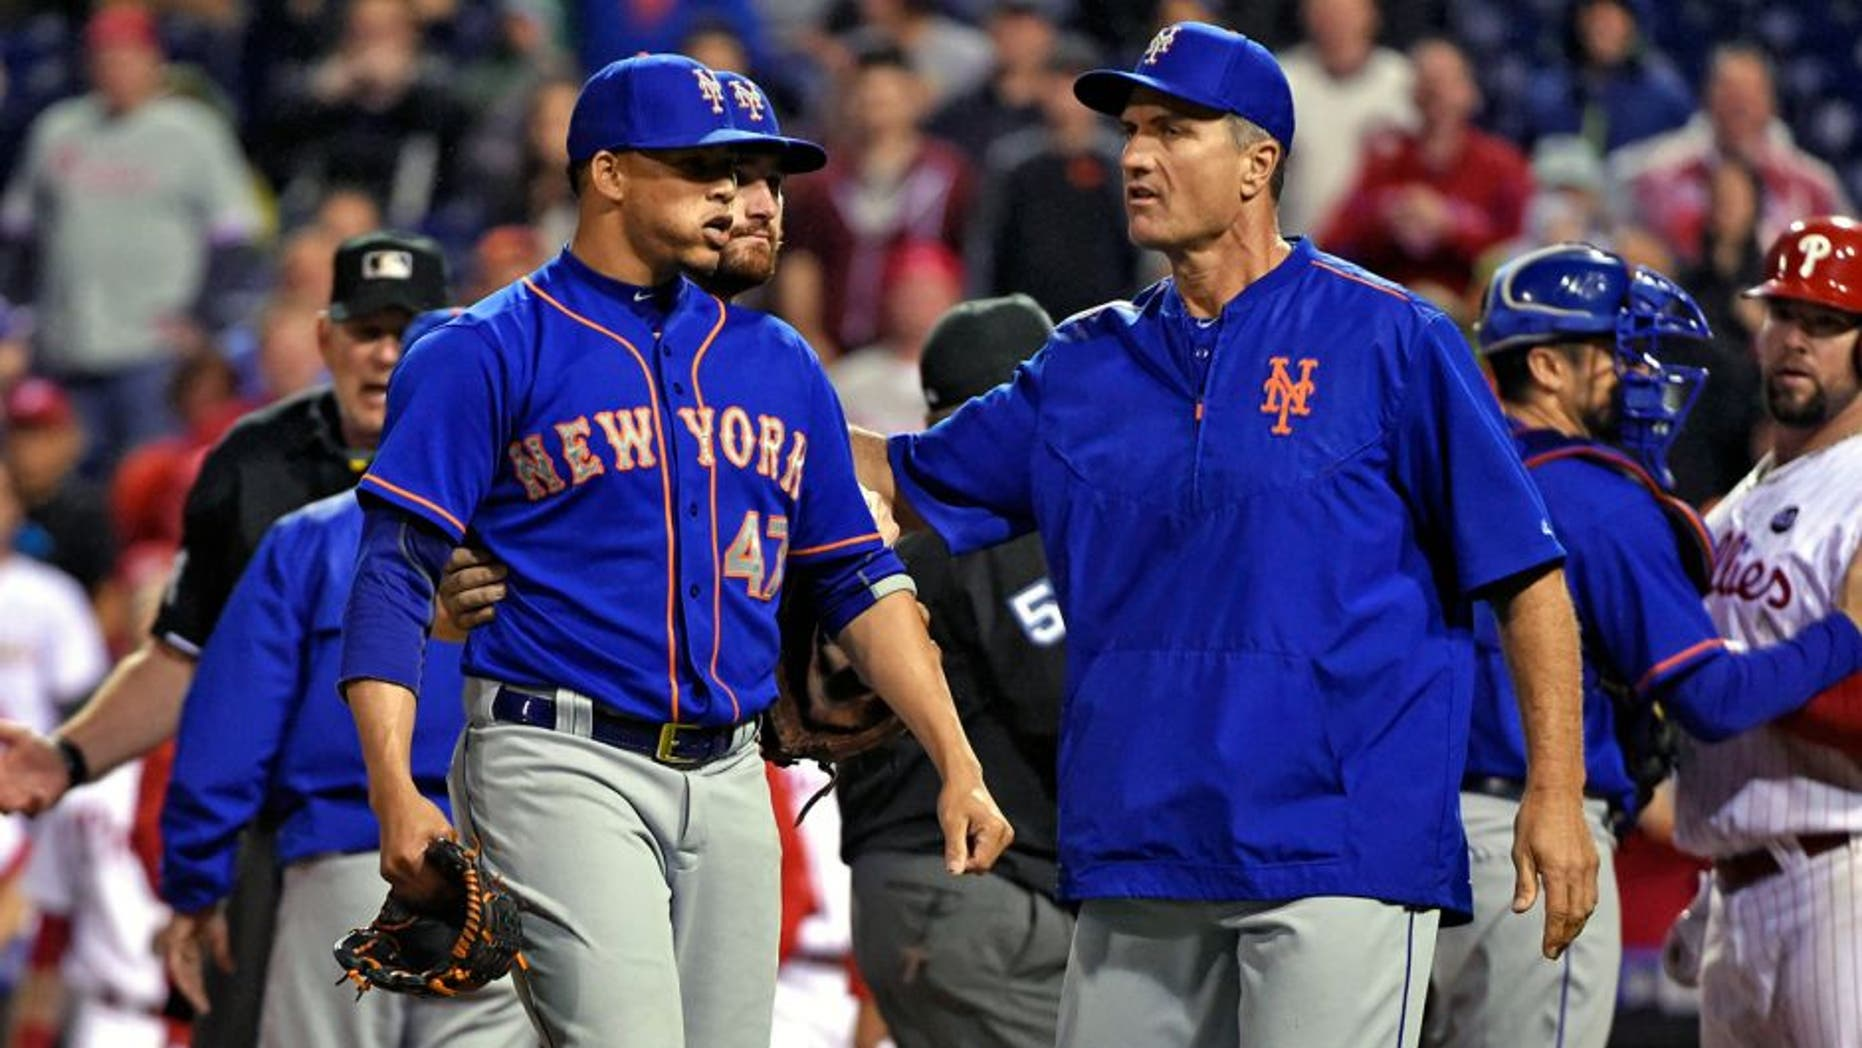 Sep 30, 2015; Philadelphia, PA, USA; New York Mets relief pitcher Hansel Robles (47) walks off the field after he threw inside to Philadelphia Phillies catcher Cameron Rupp (29) during the sixth inning against the New York Mets at Citizens Bank Park. Mandatory Credit: Eric Hartline-USA TODAY Sports